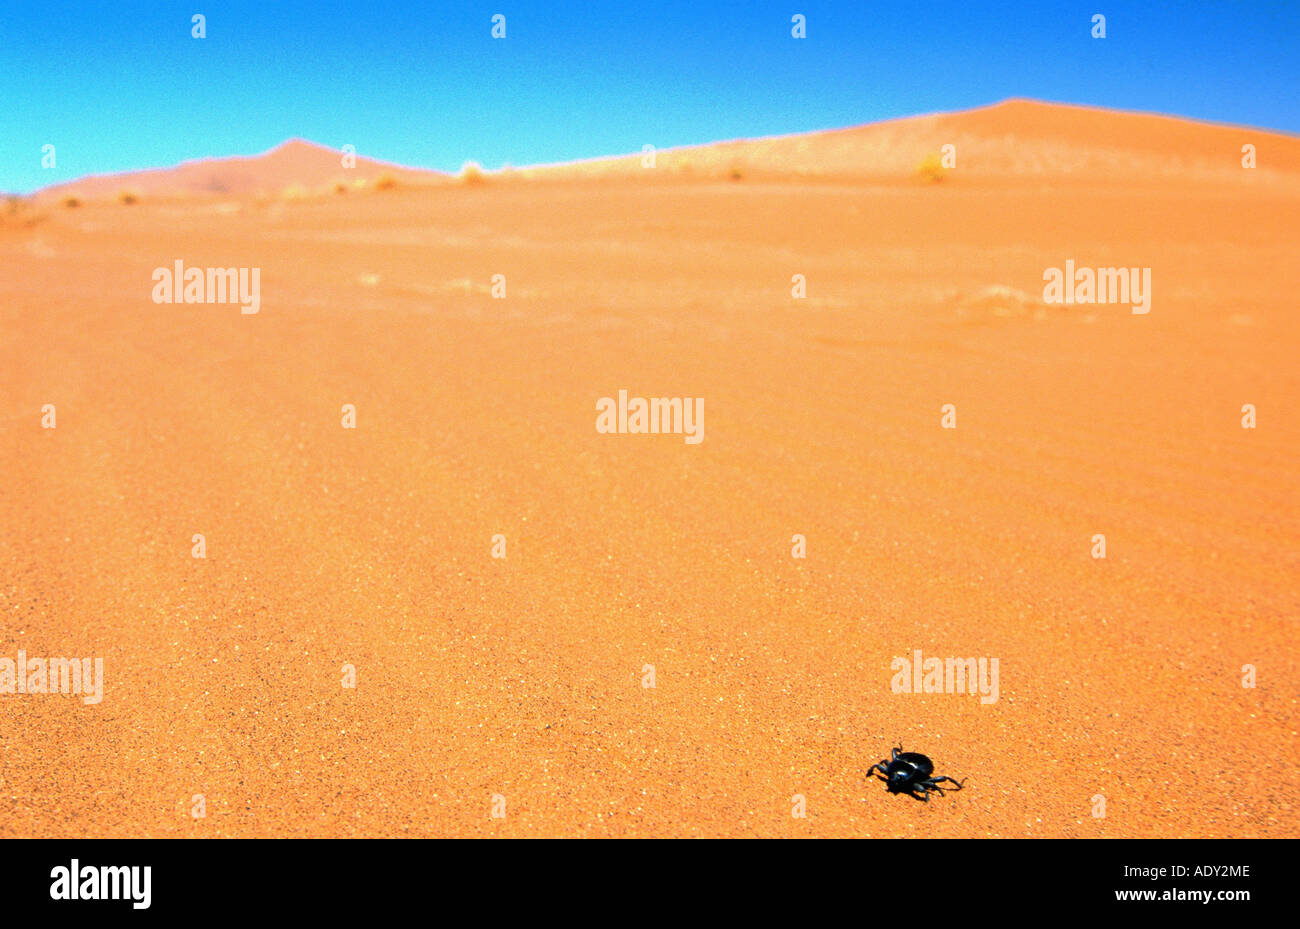 tok-tokky (Onymacris unguicularis), with sand dunes, example for spieces with adaption to extreme dry habitats, Namibia - Stock Image